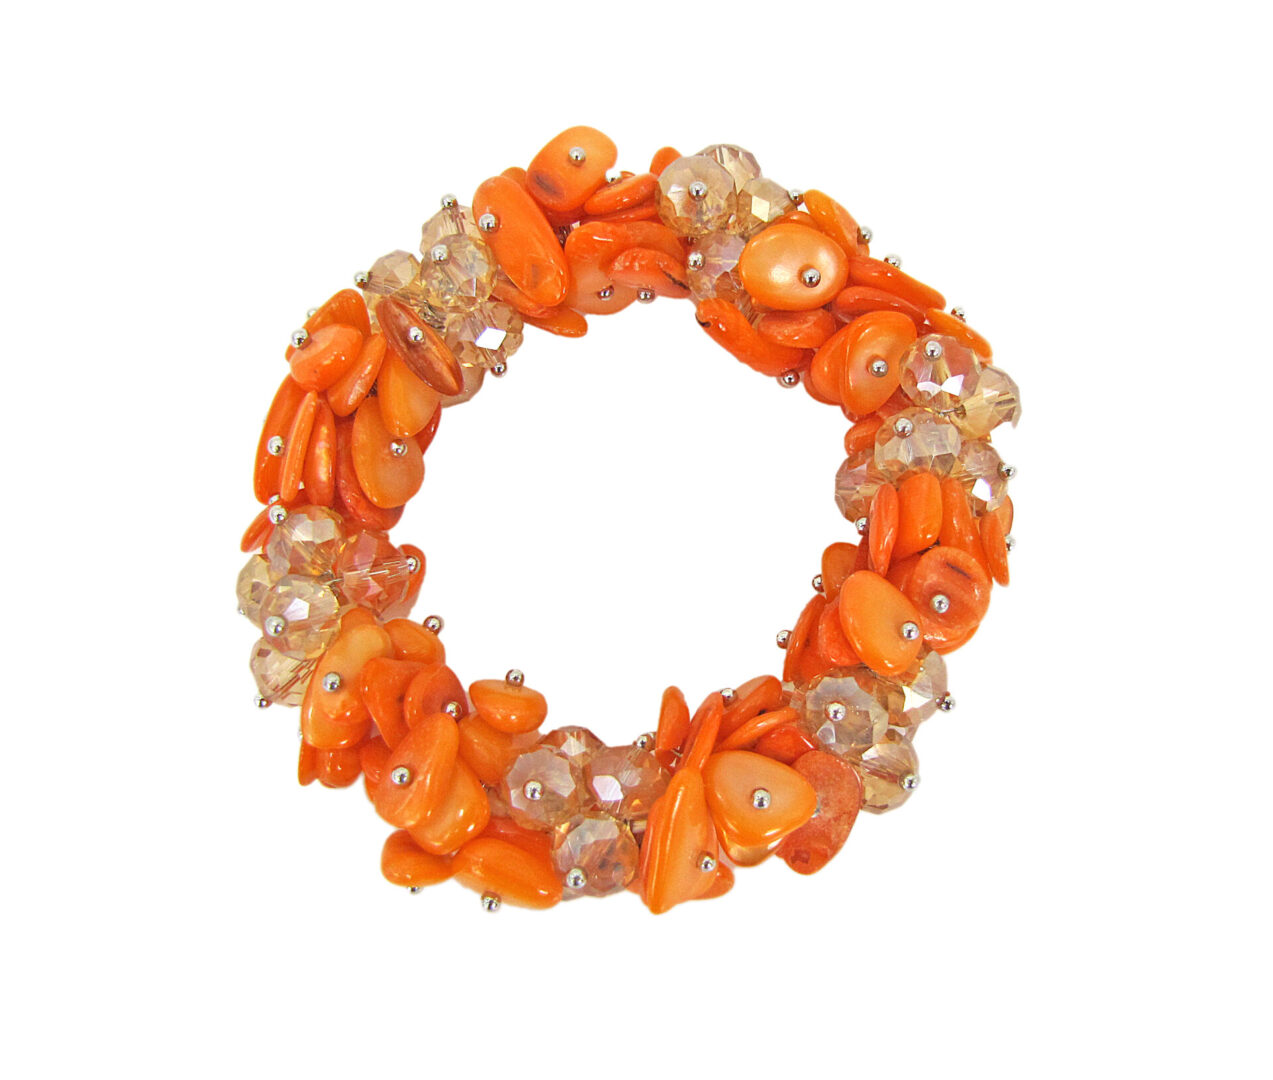 bracelet with orange beads and crystals in clusters